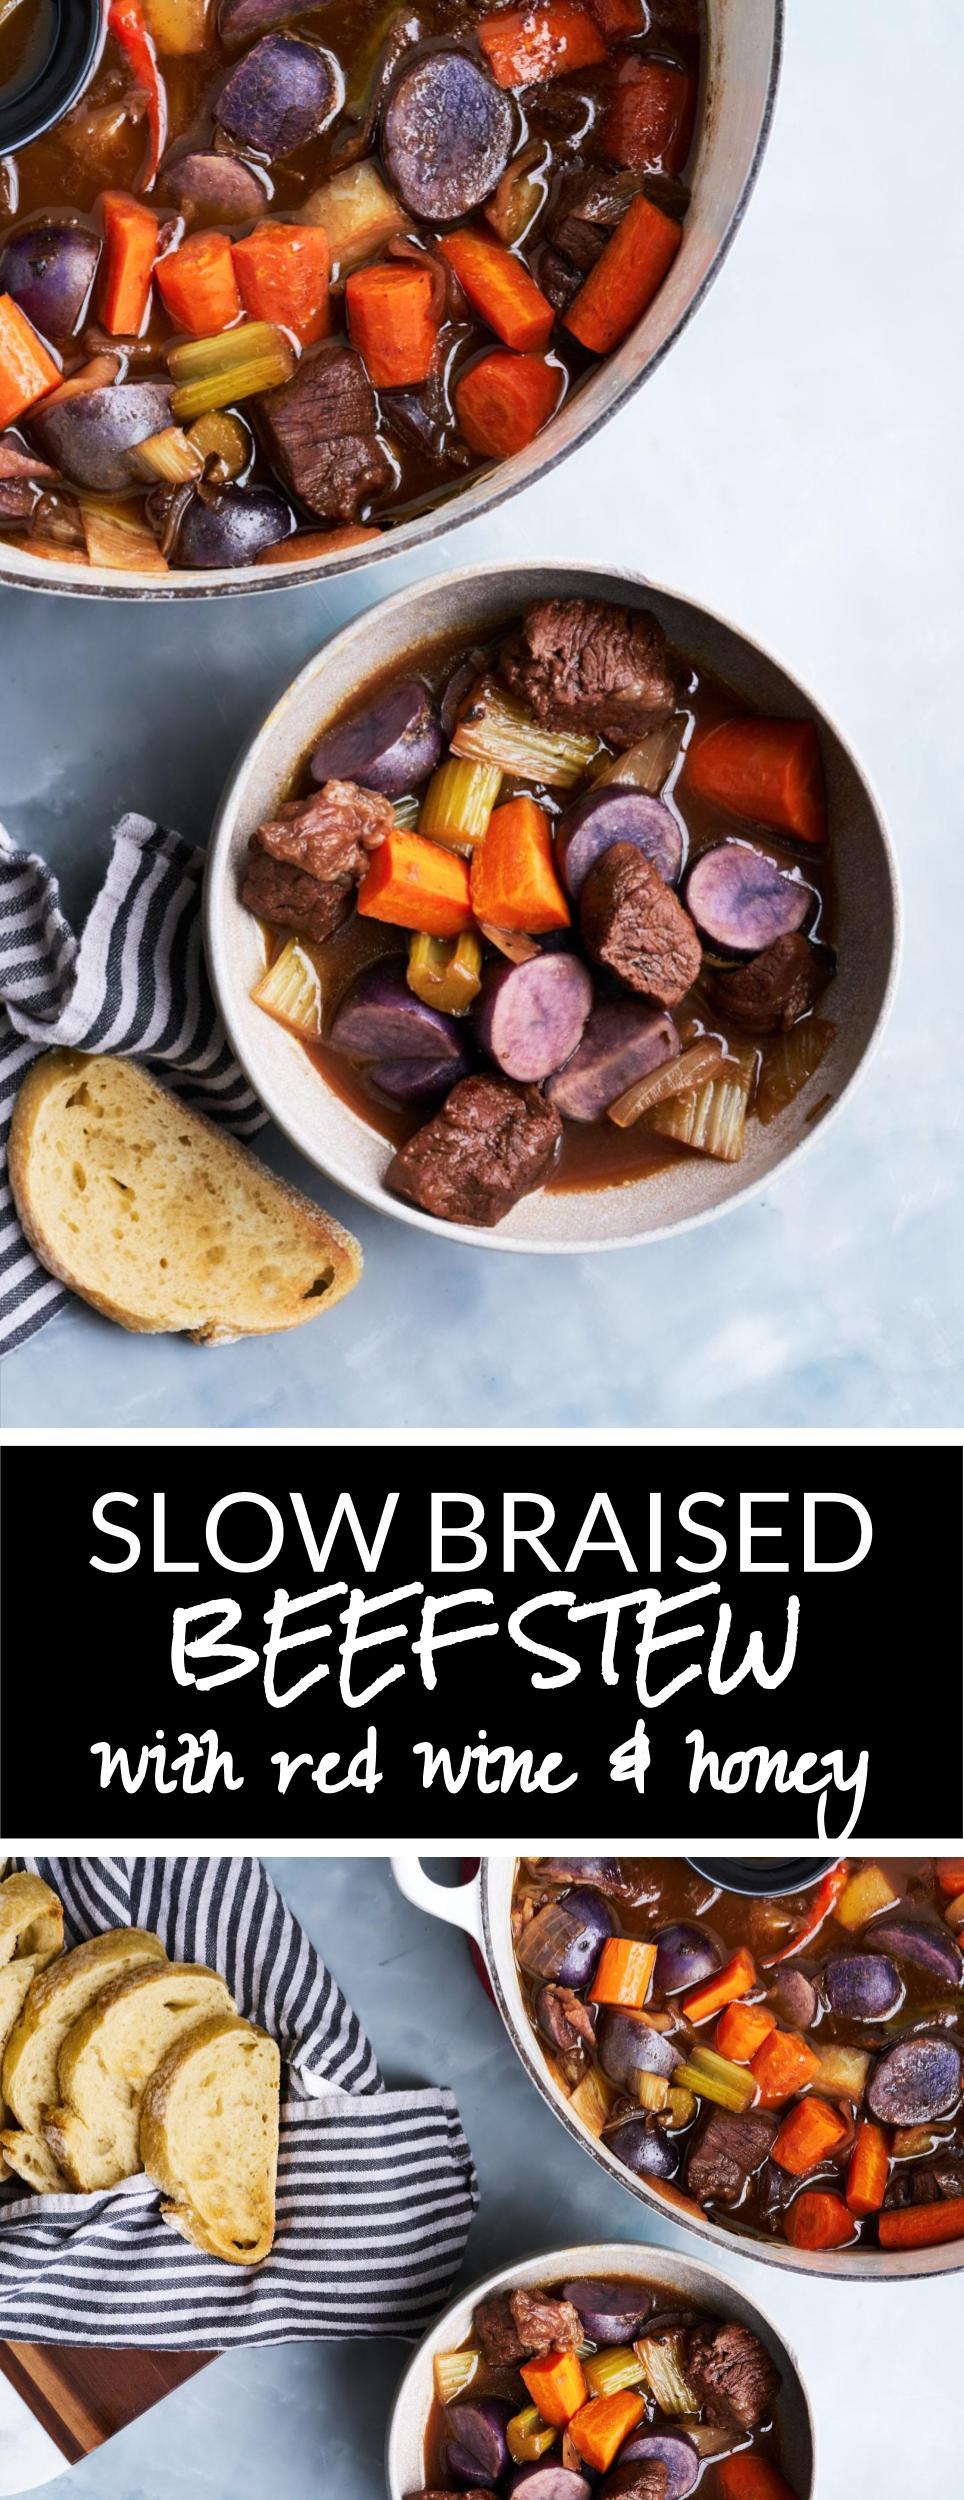 Red Wine & Honey Braised Beef Stew PLUS Fall Pantry Essentials | Proportional Plate